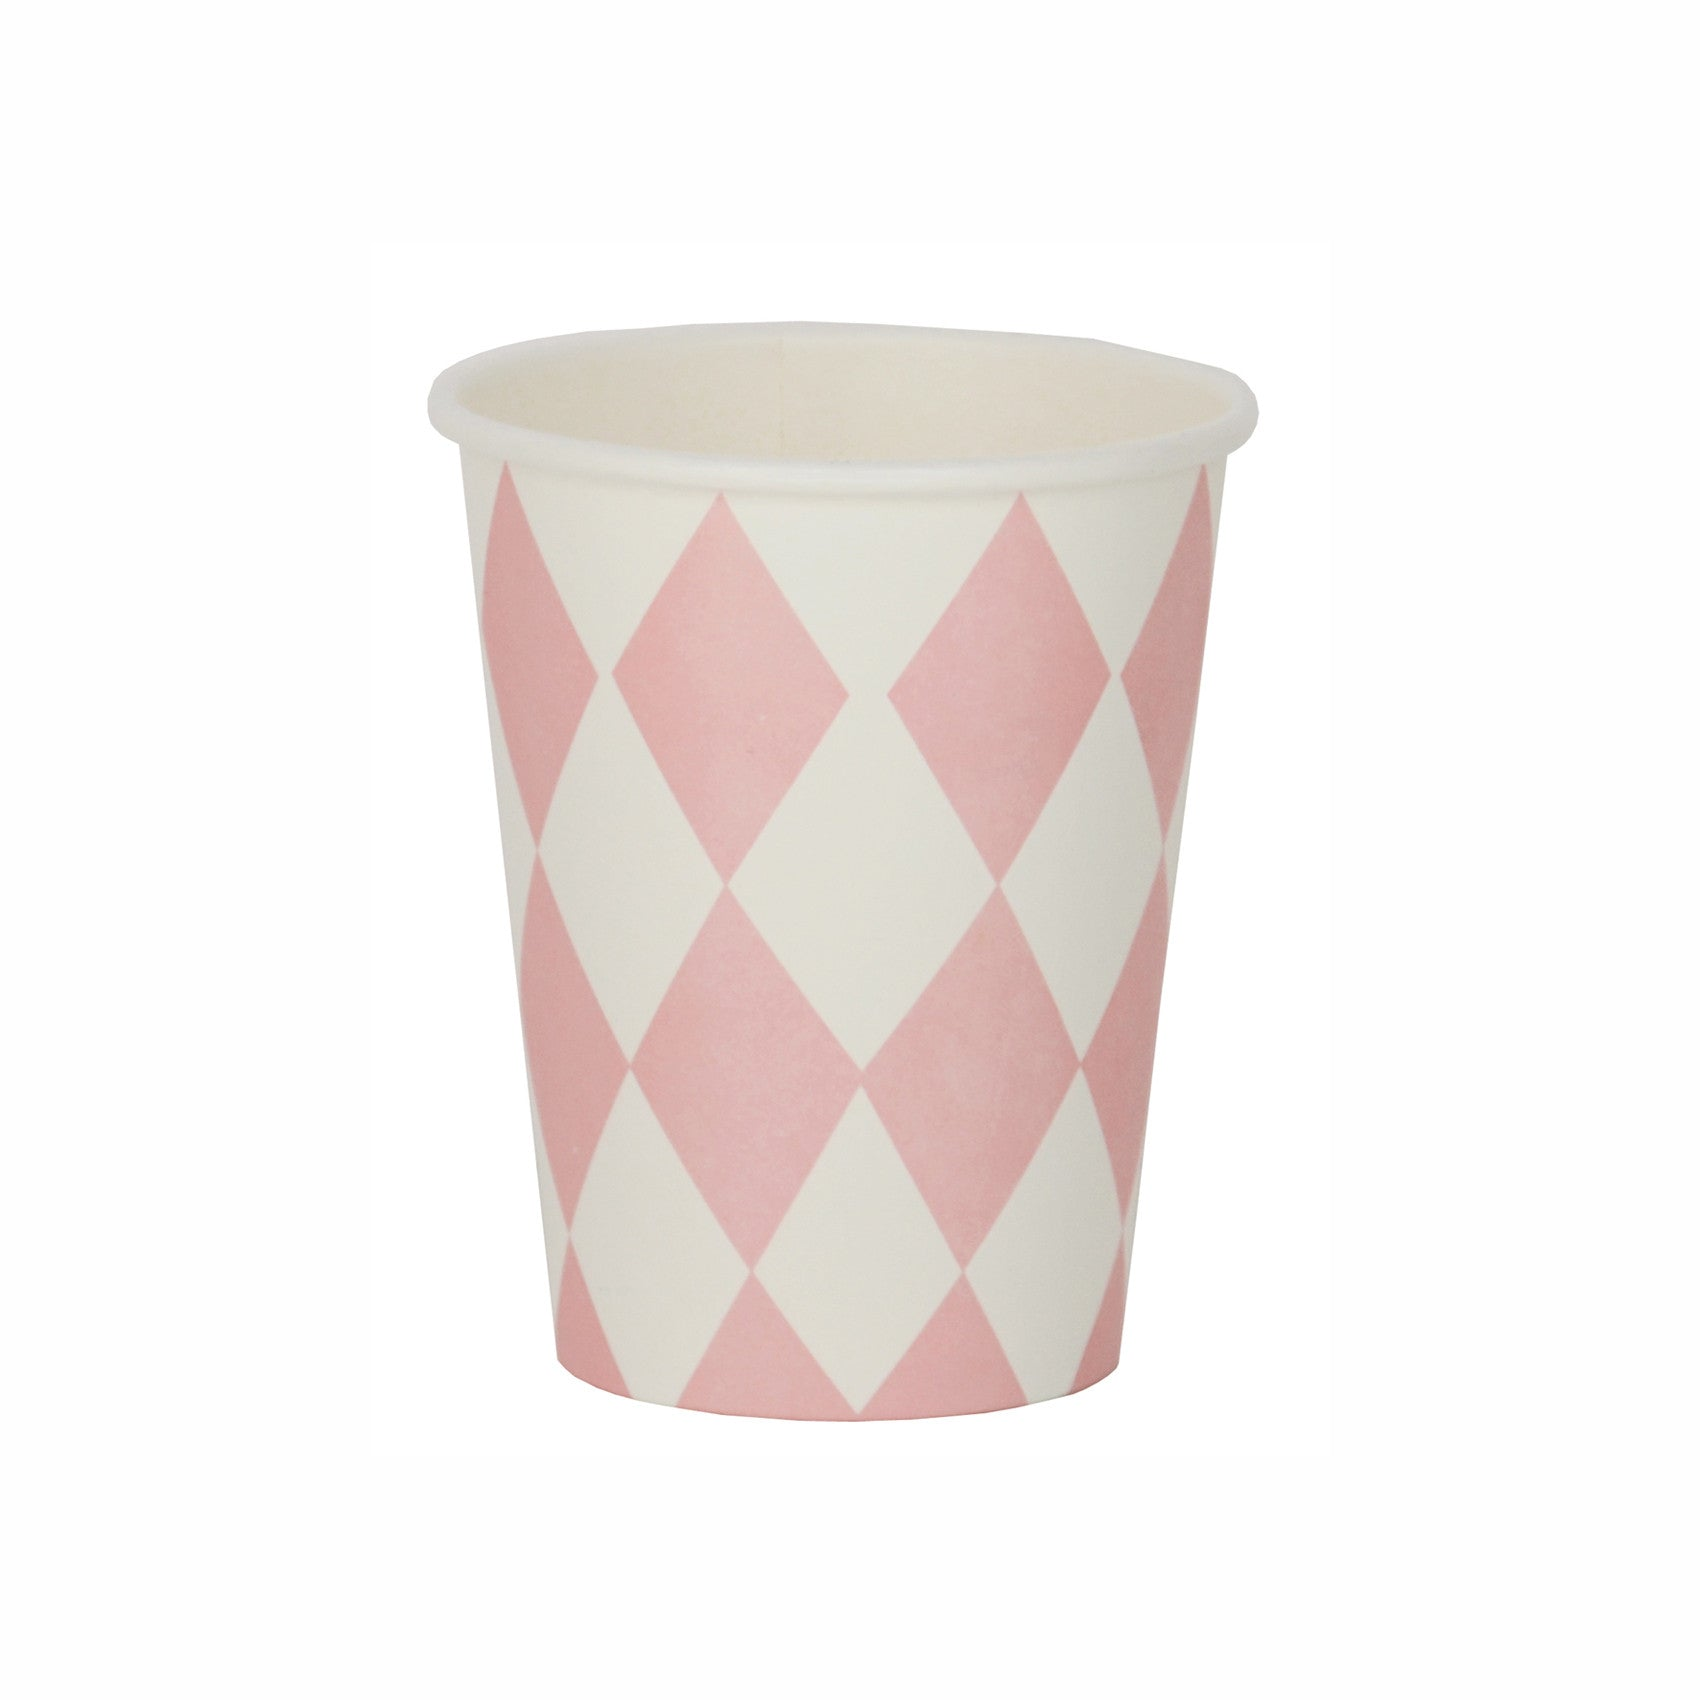 my little day - Paper Party Cups - Light Pink Diamonds - how-i-wonder